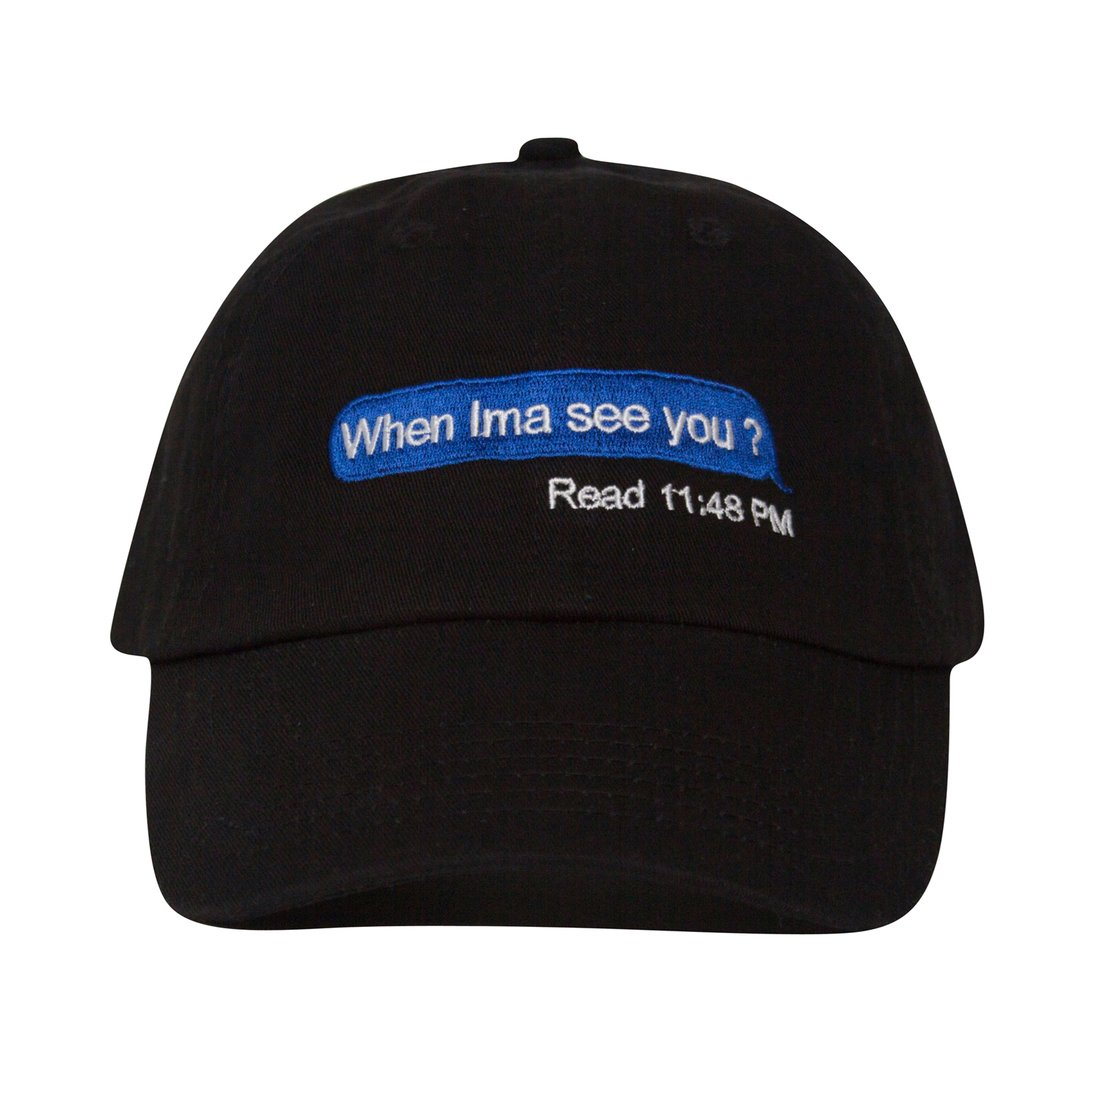 When Ima see you? Dad Hat Cap